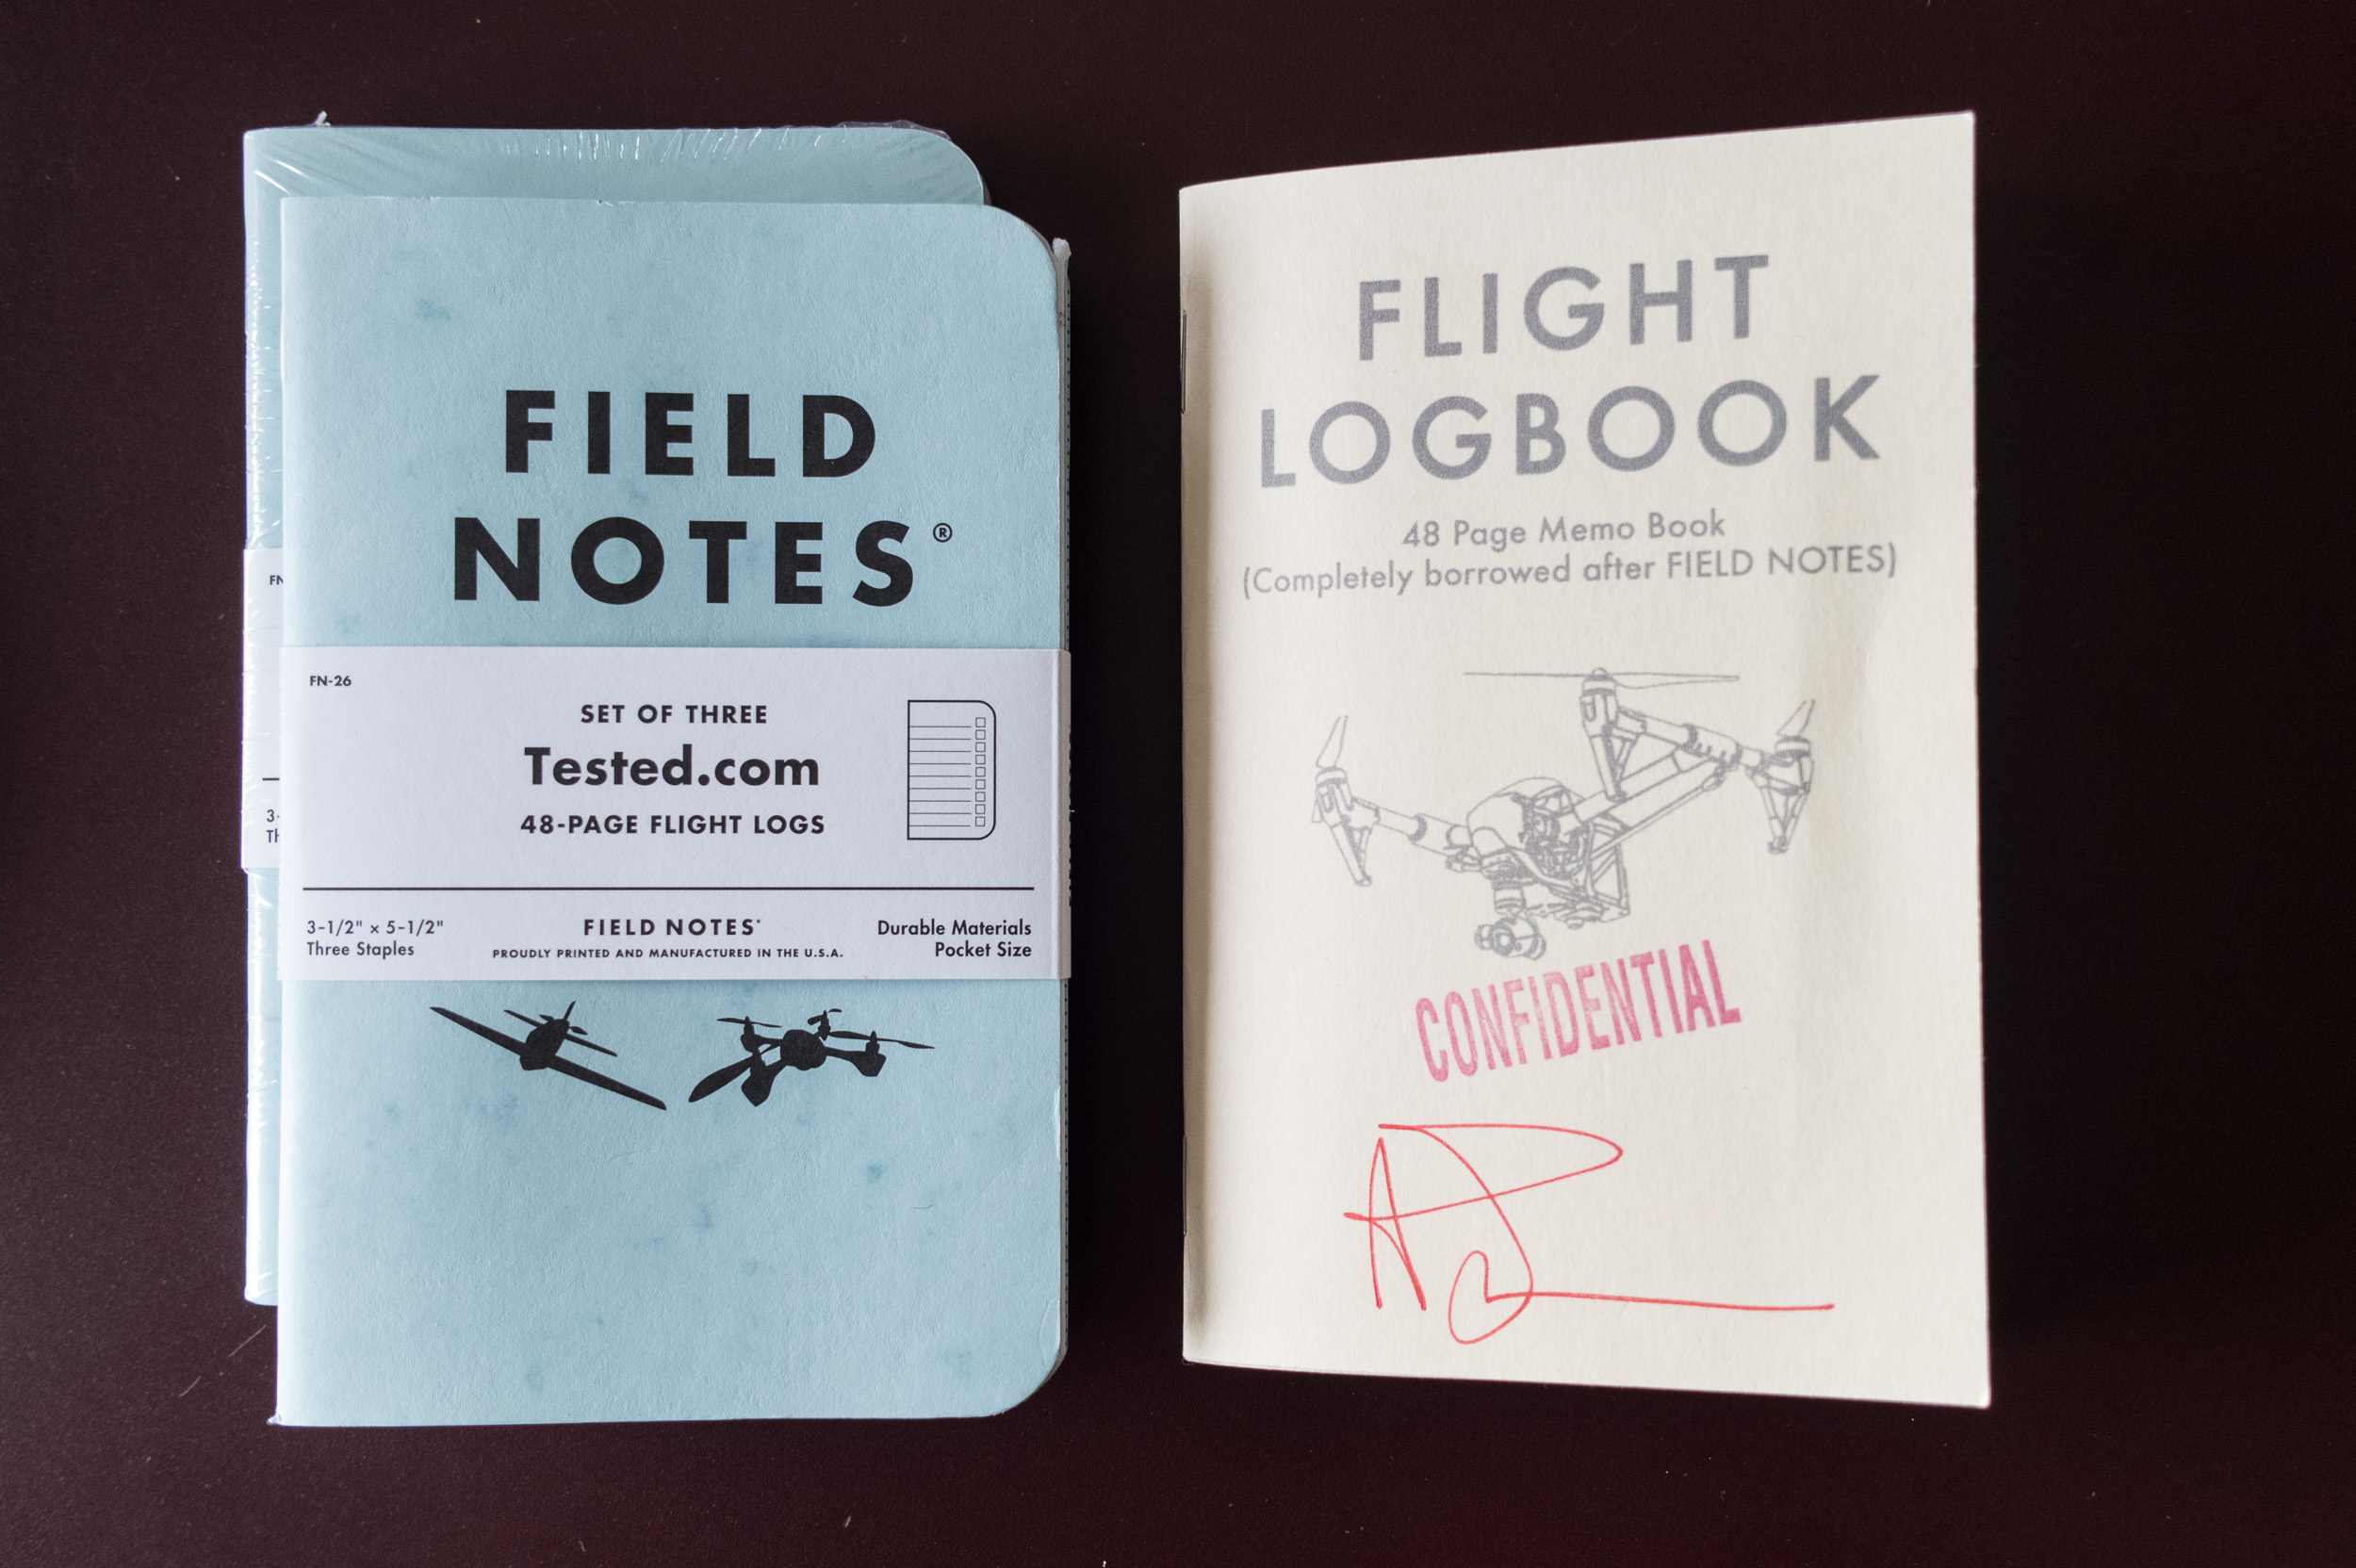 Adam Savage and Tested.com UAS Flight Logbook by Field Notes